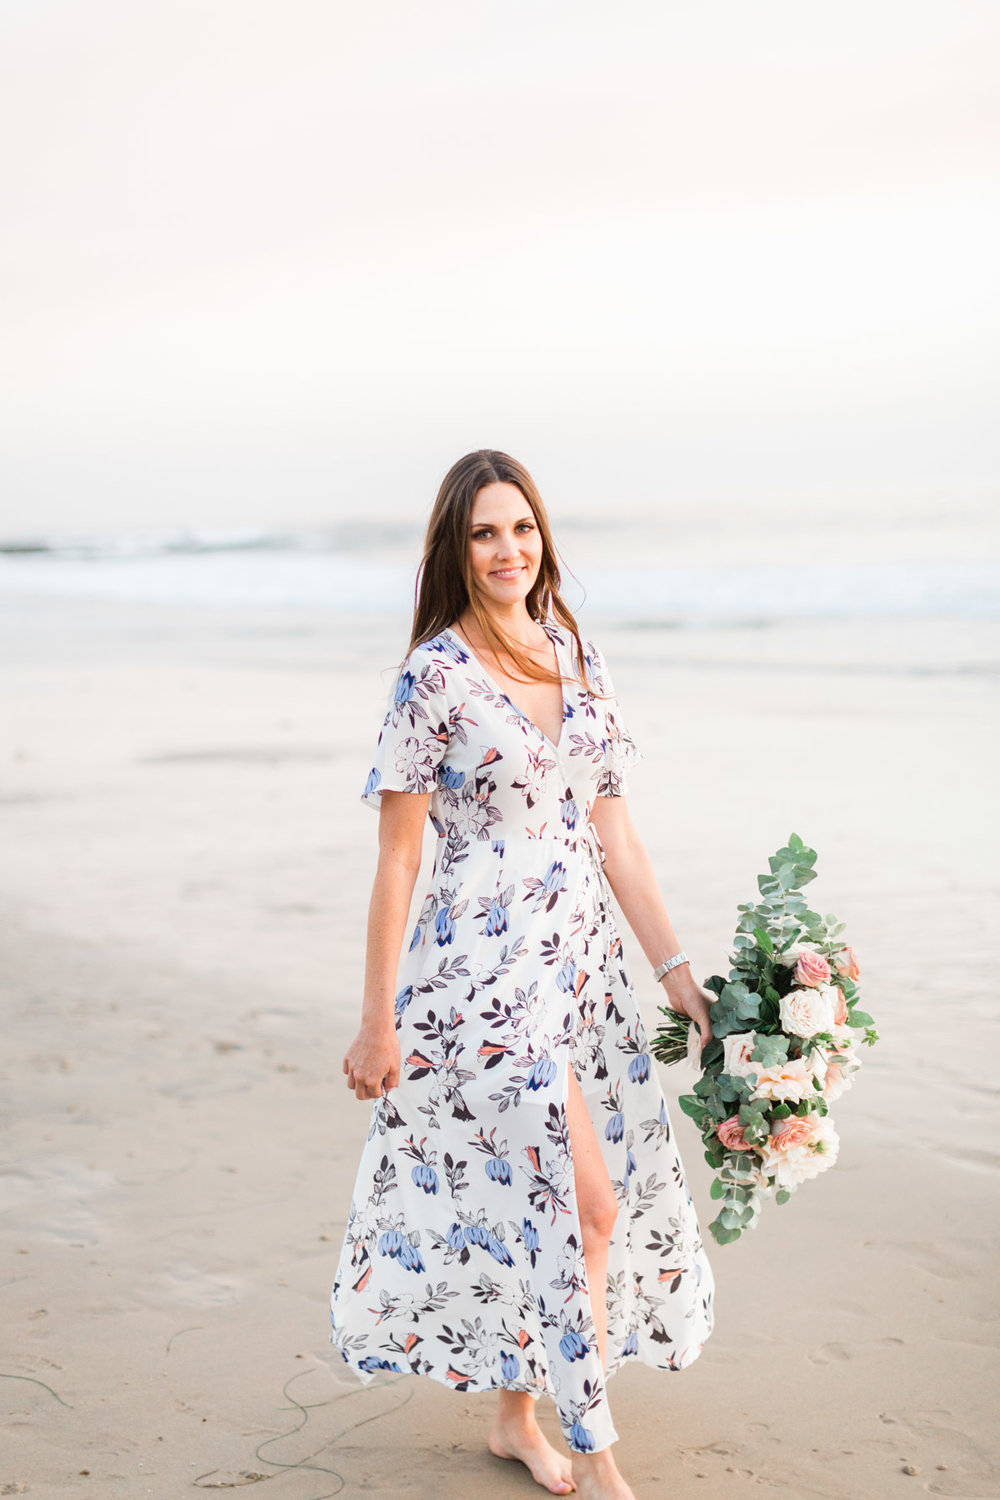 Down to earth, classic, beach engagement photos | Newport Beach, CA | Compass Floral | Wedding Florist in San Diego and Southern California | Cavin Elizabeth Photography